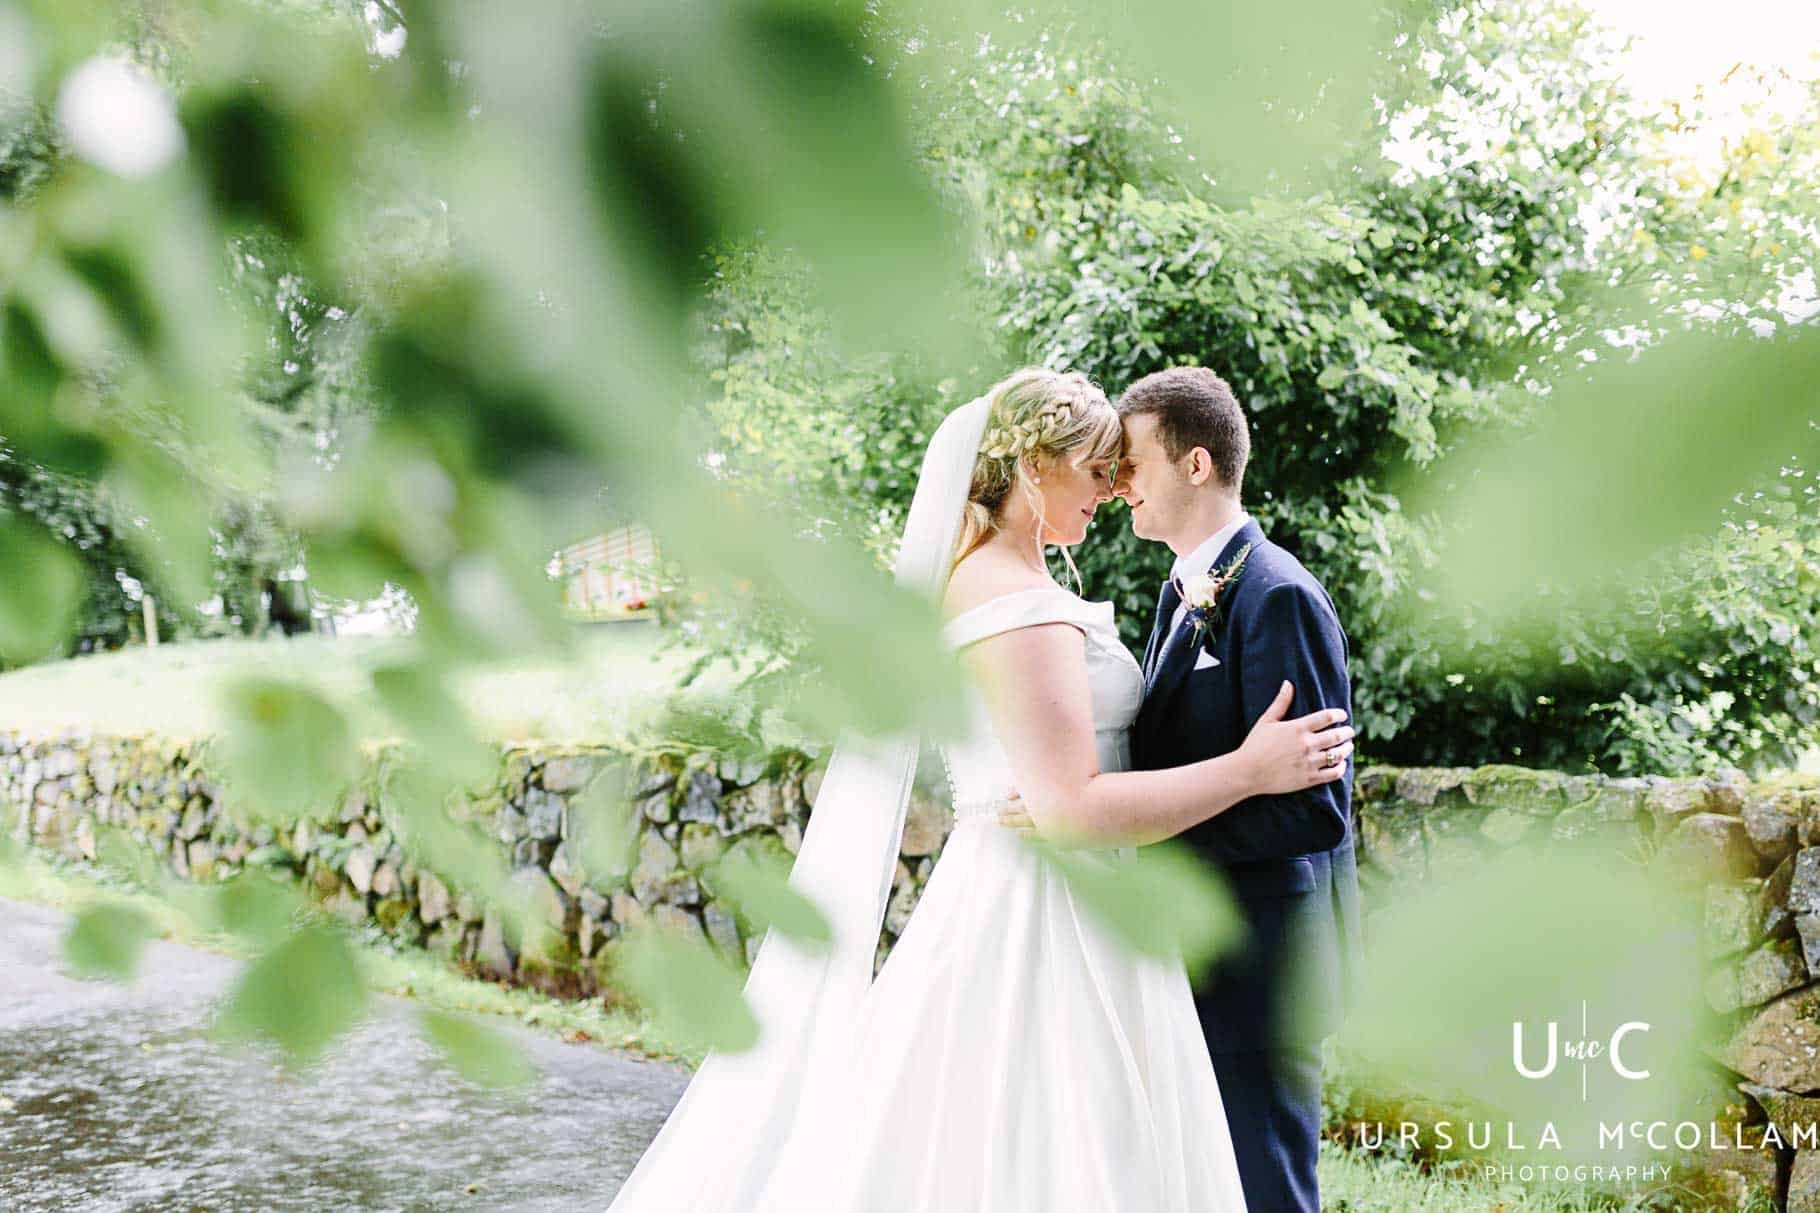 Bride and groom hidden by a tree